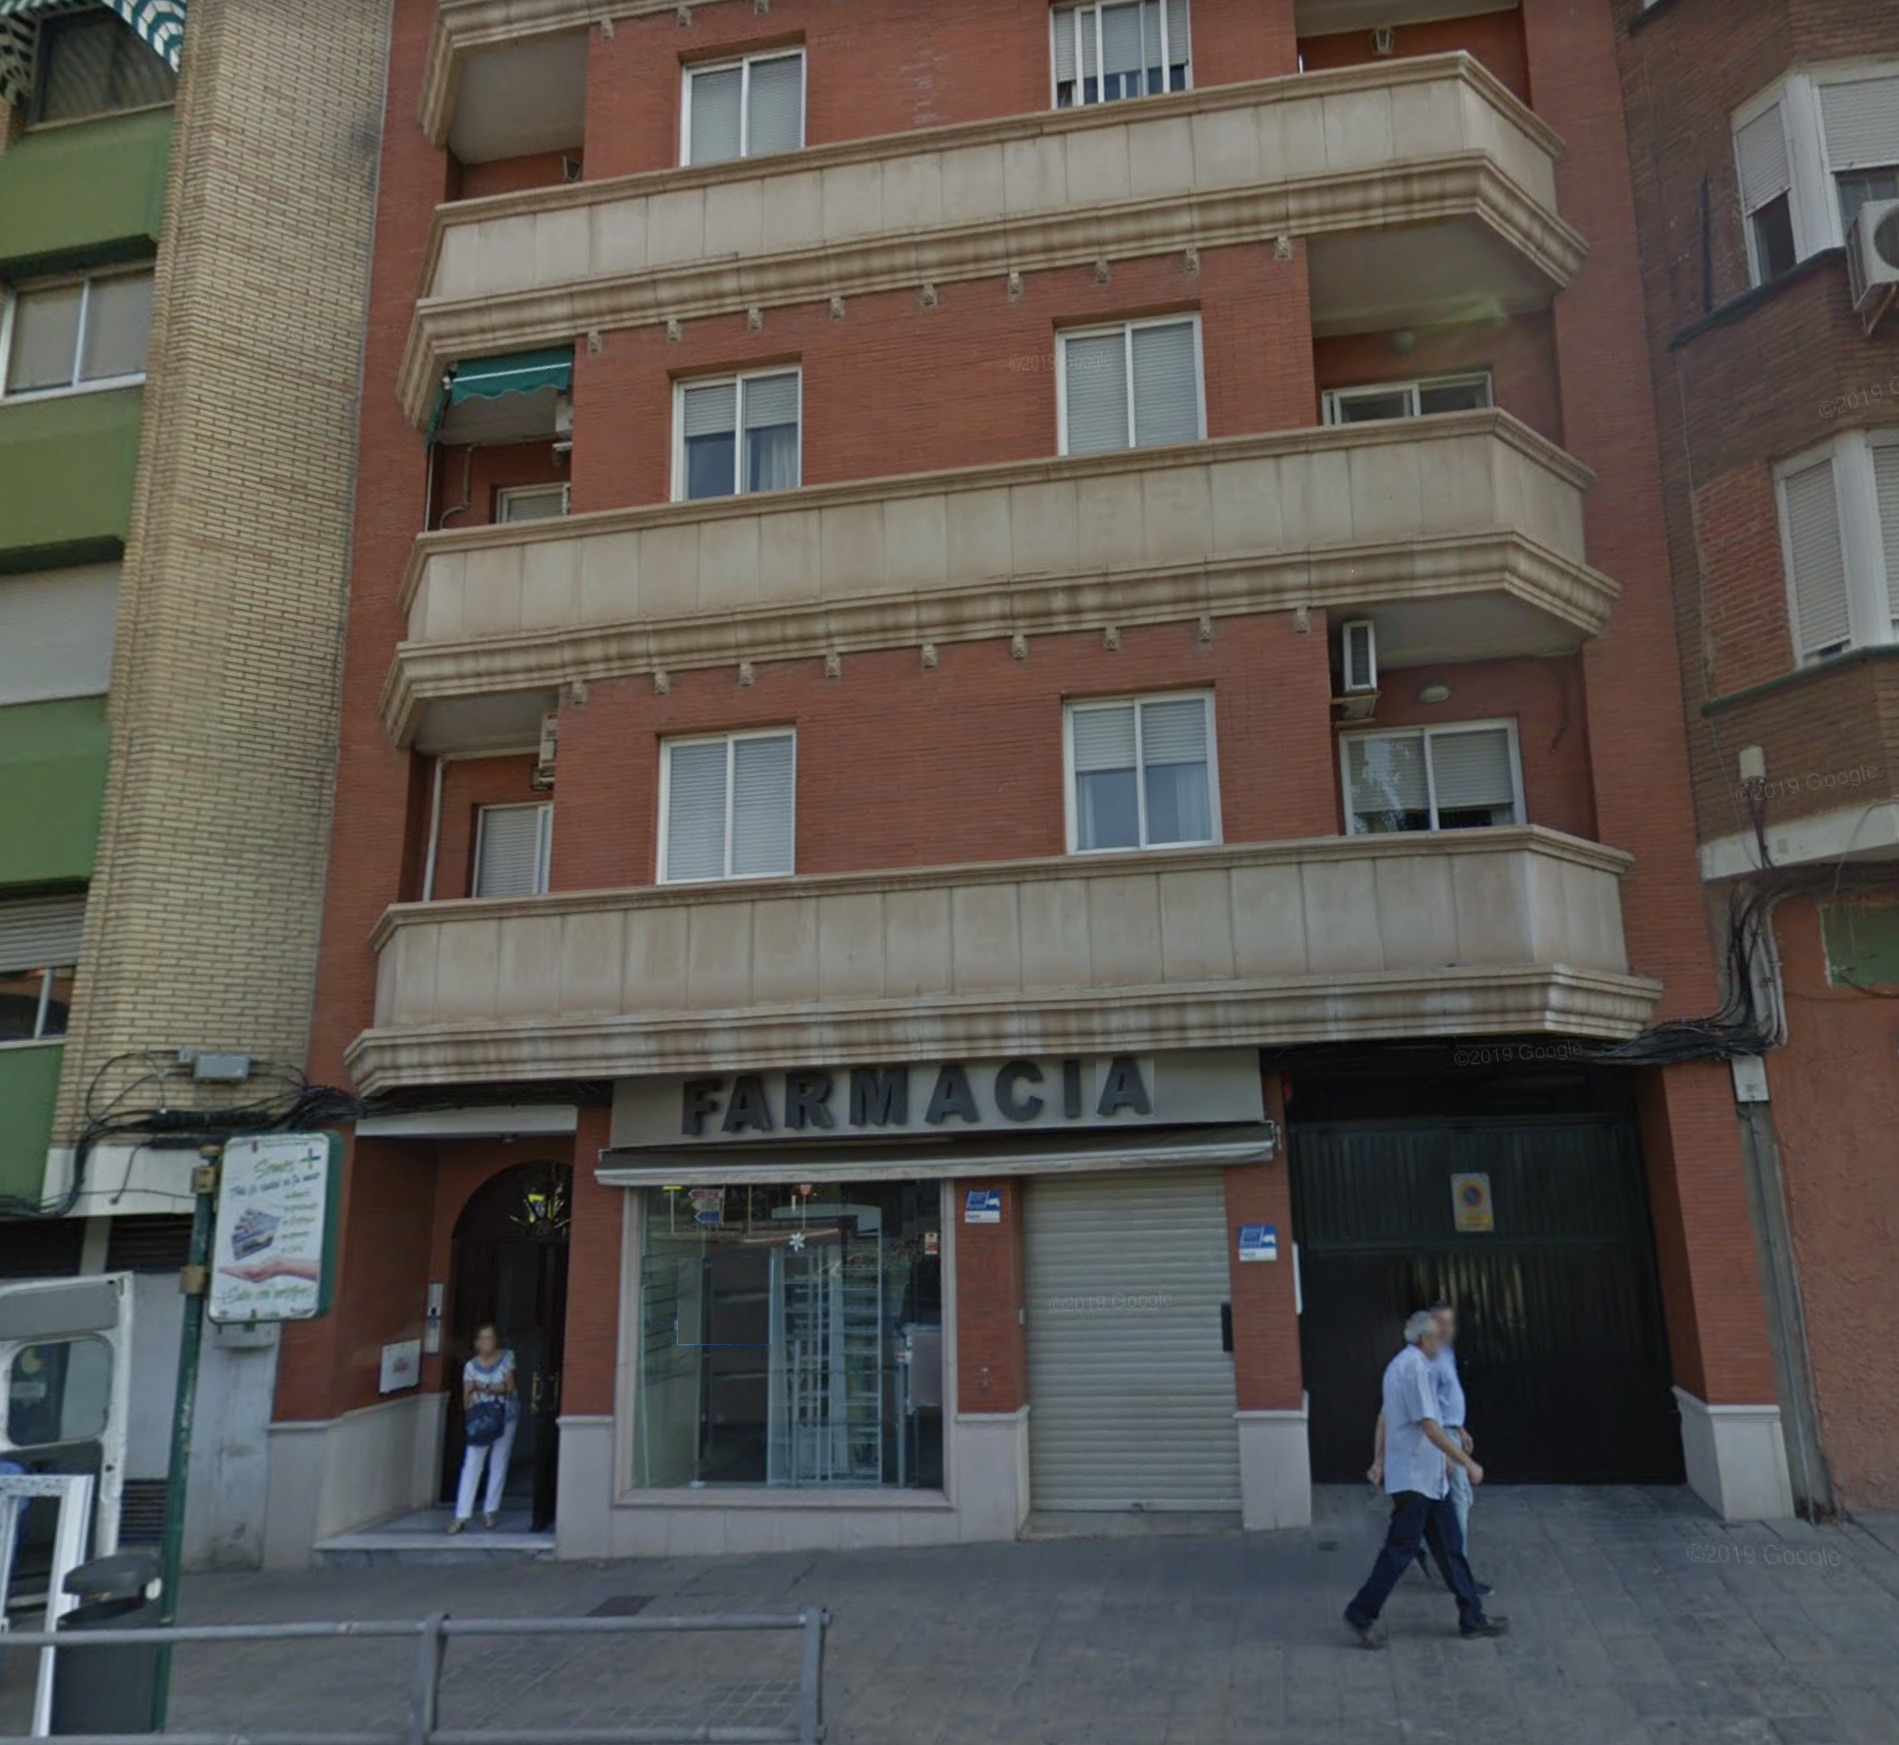 Farmacia vendida en Ciudad Real capital en Ronda Ciruela